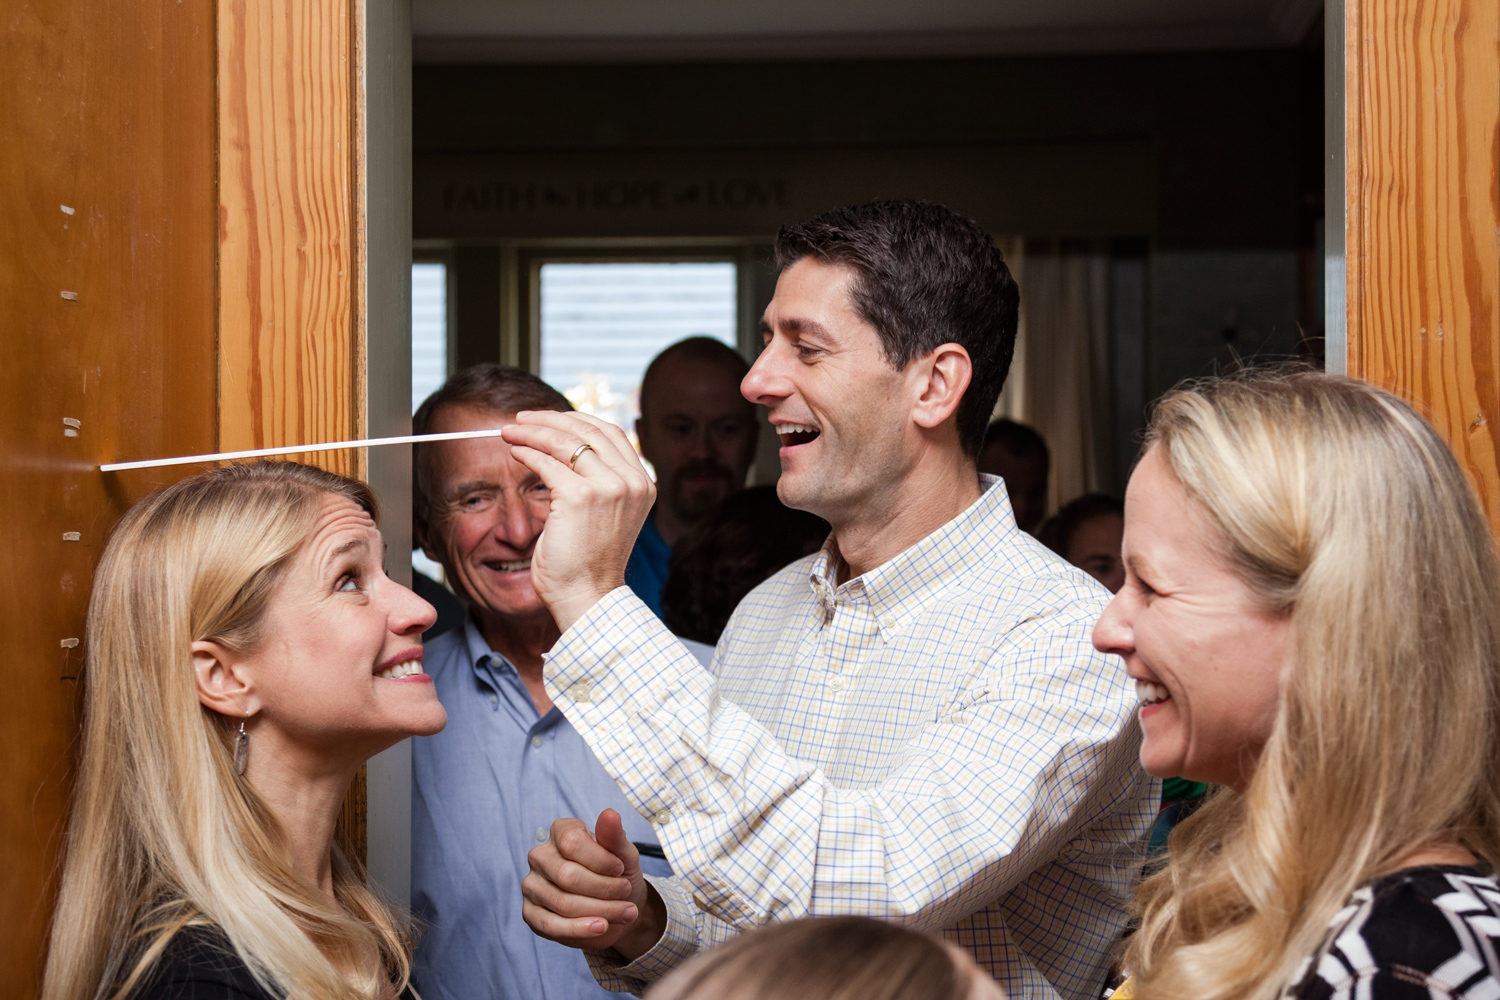 Paul Ryan compares his wife Jana's height to her childhood measurements at her grandmother's former home in Clinton, Iowa. Oct. 2, 2012.